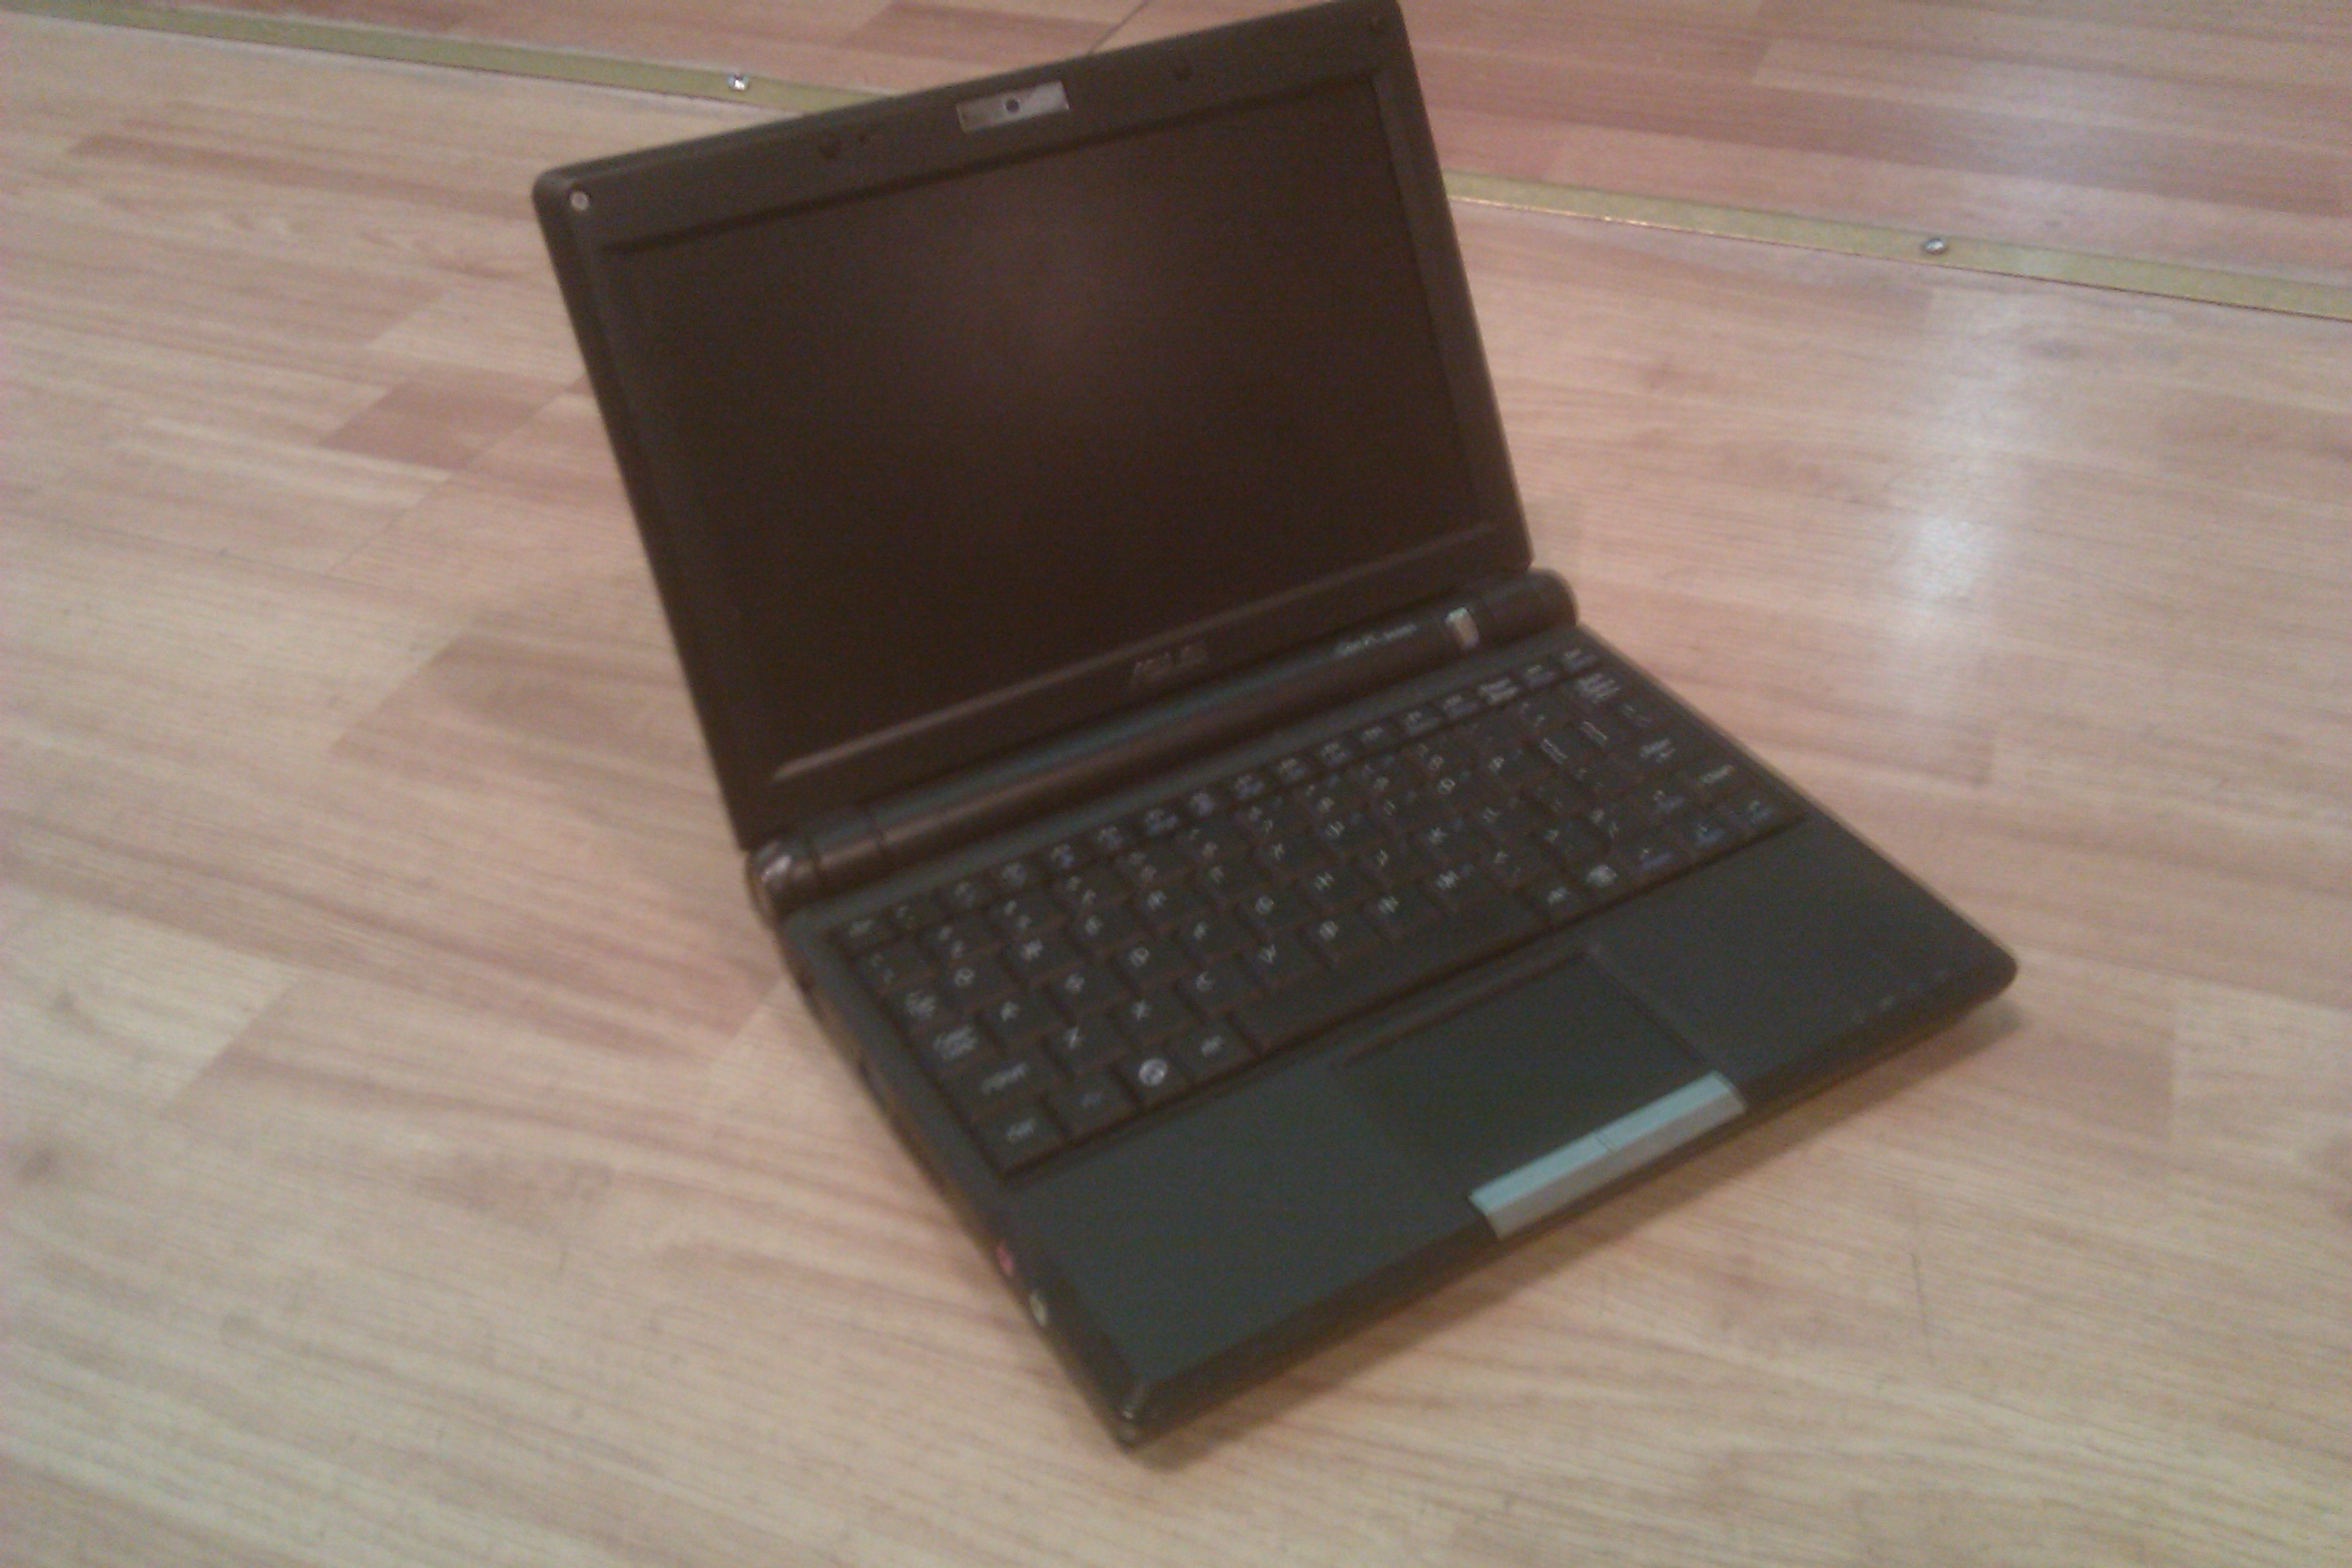 Asus EeePC ready for a laptop cleaning